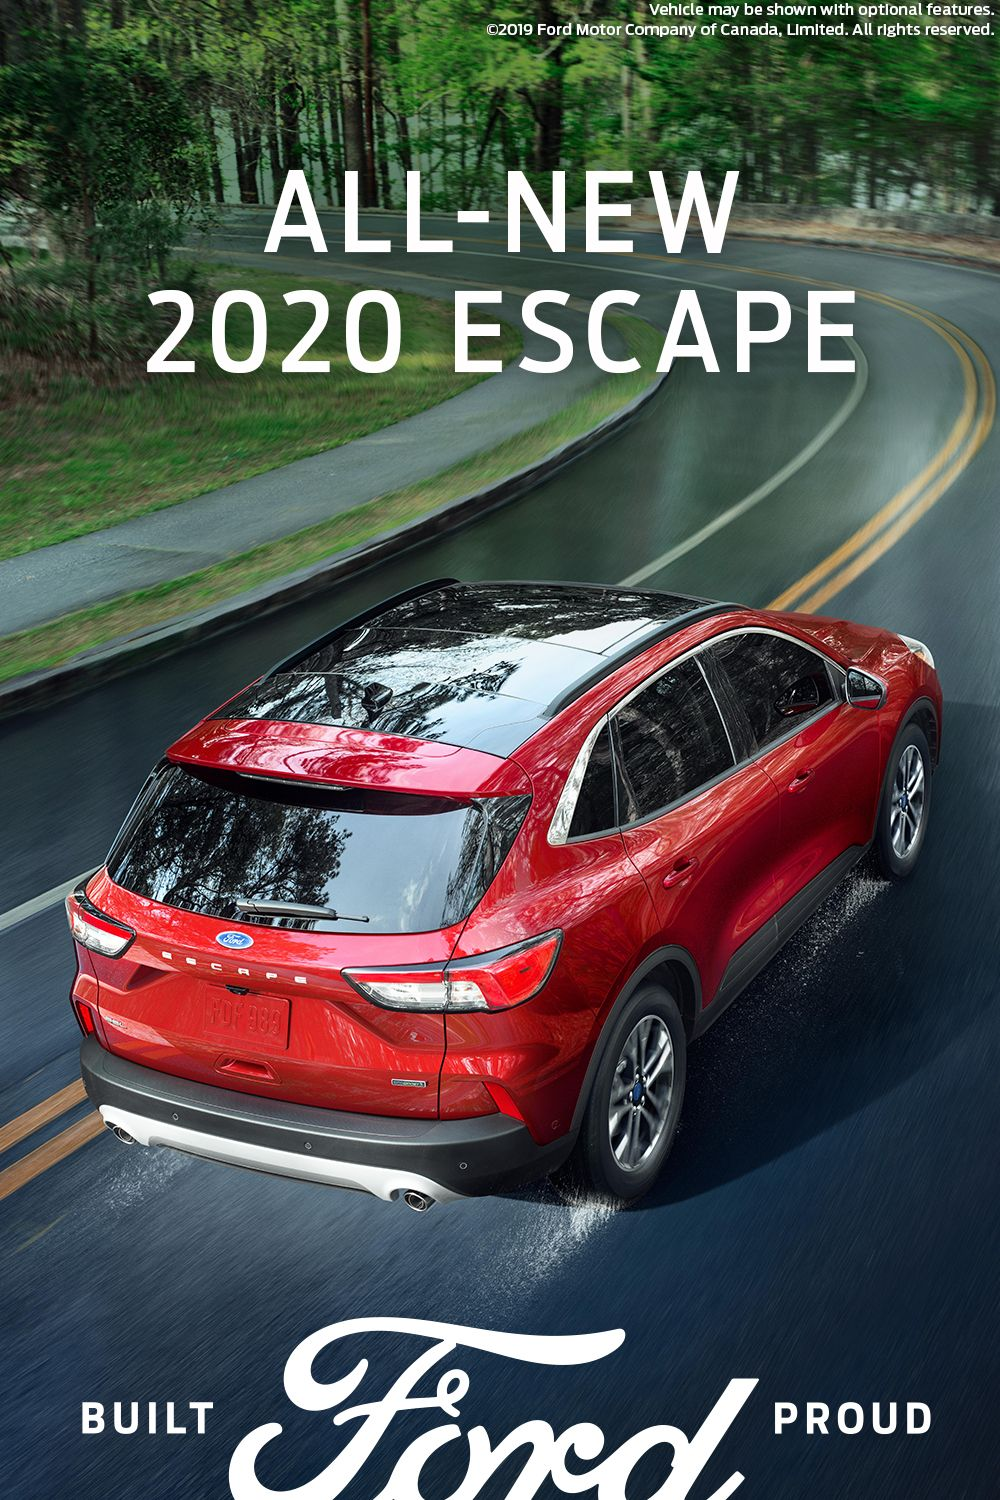 Pin By Steph Cookson On Car Advertising In 2020 Ford Escape Best Muscle Cars Ford